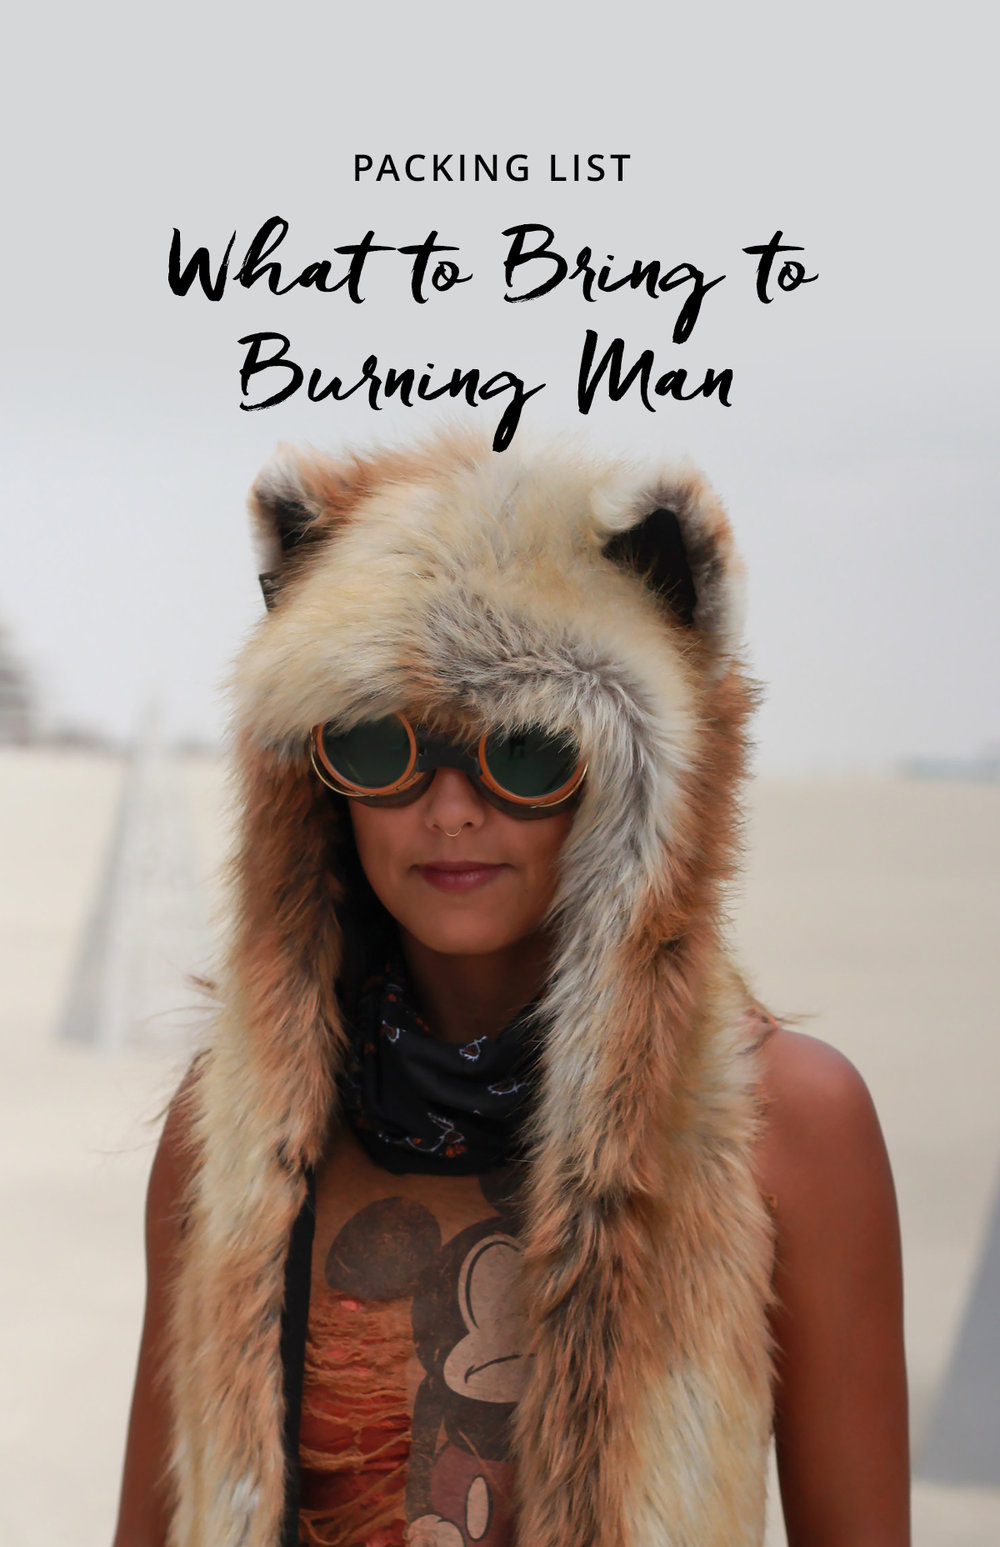 social-chrissihernandez-burning-man-checklist.jpg